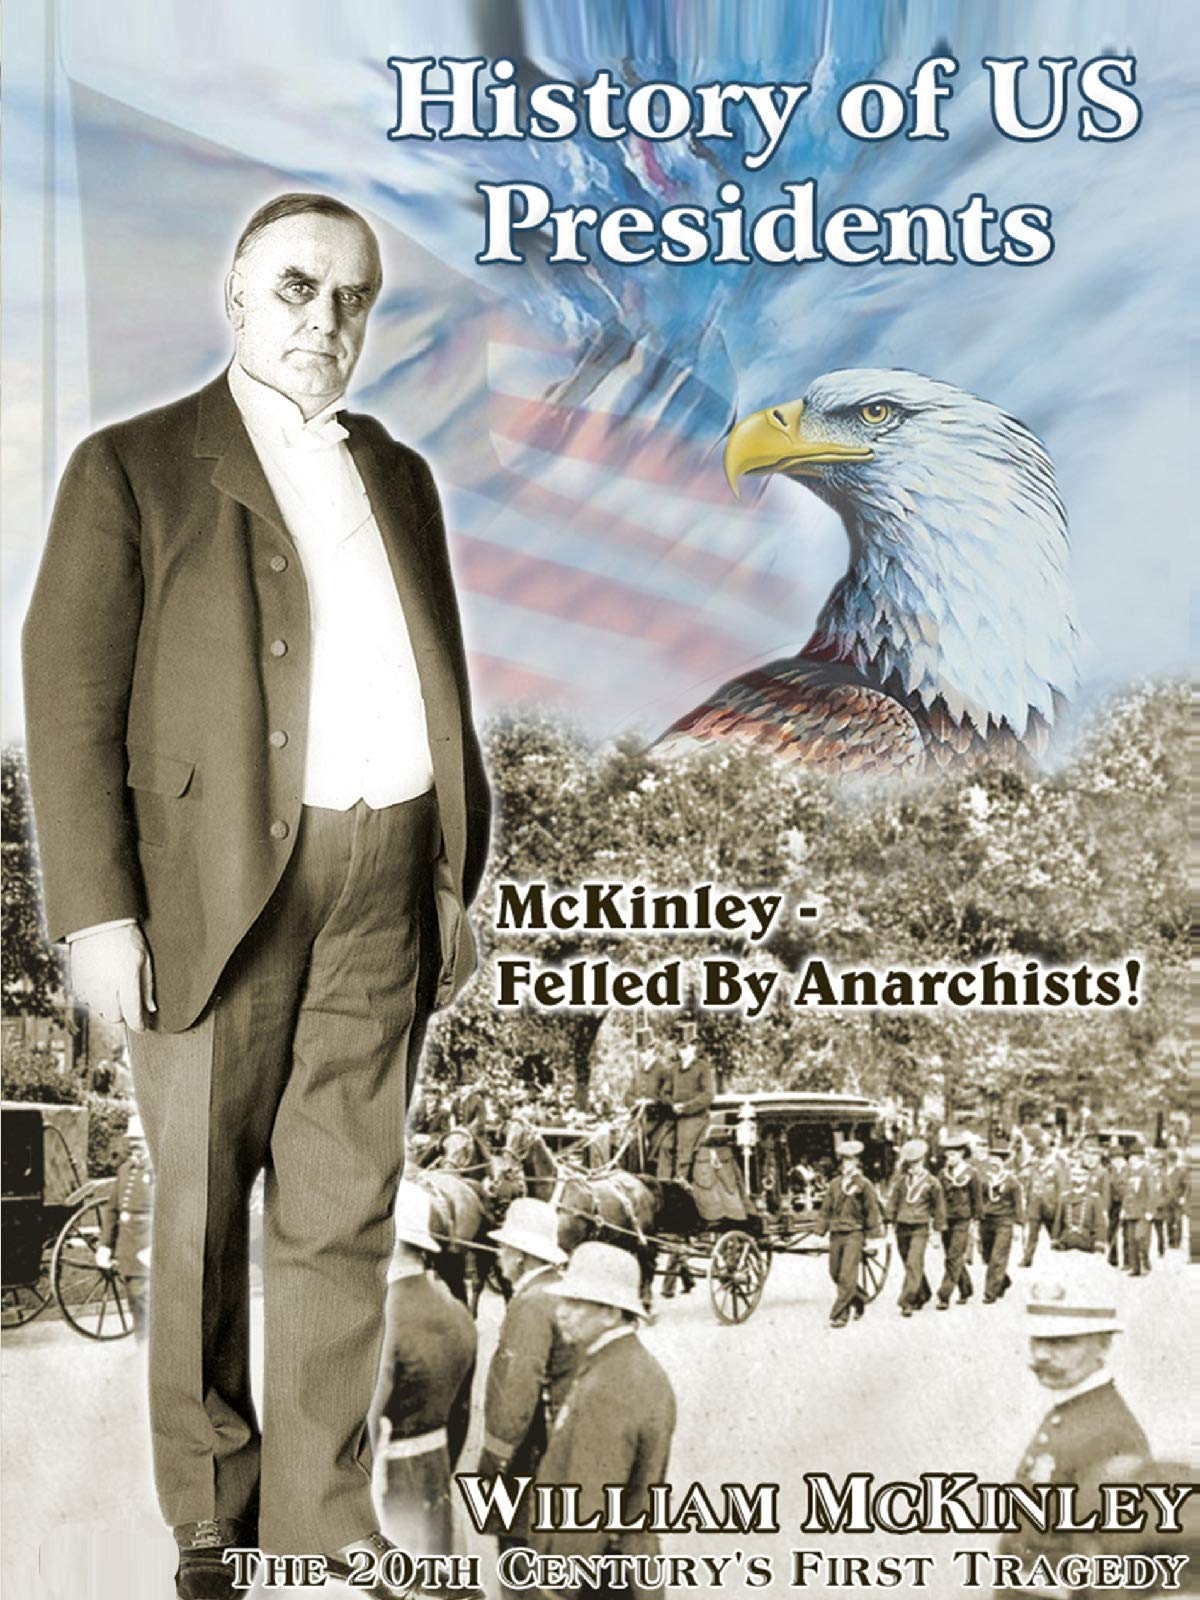 History of US Presidents: William Mckinley - The 20th Century's First Tragedy Video on Amazon Prime Video UK